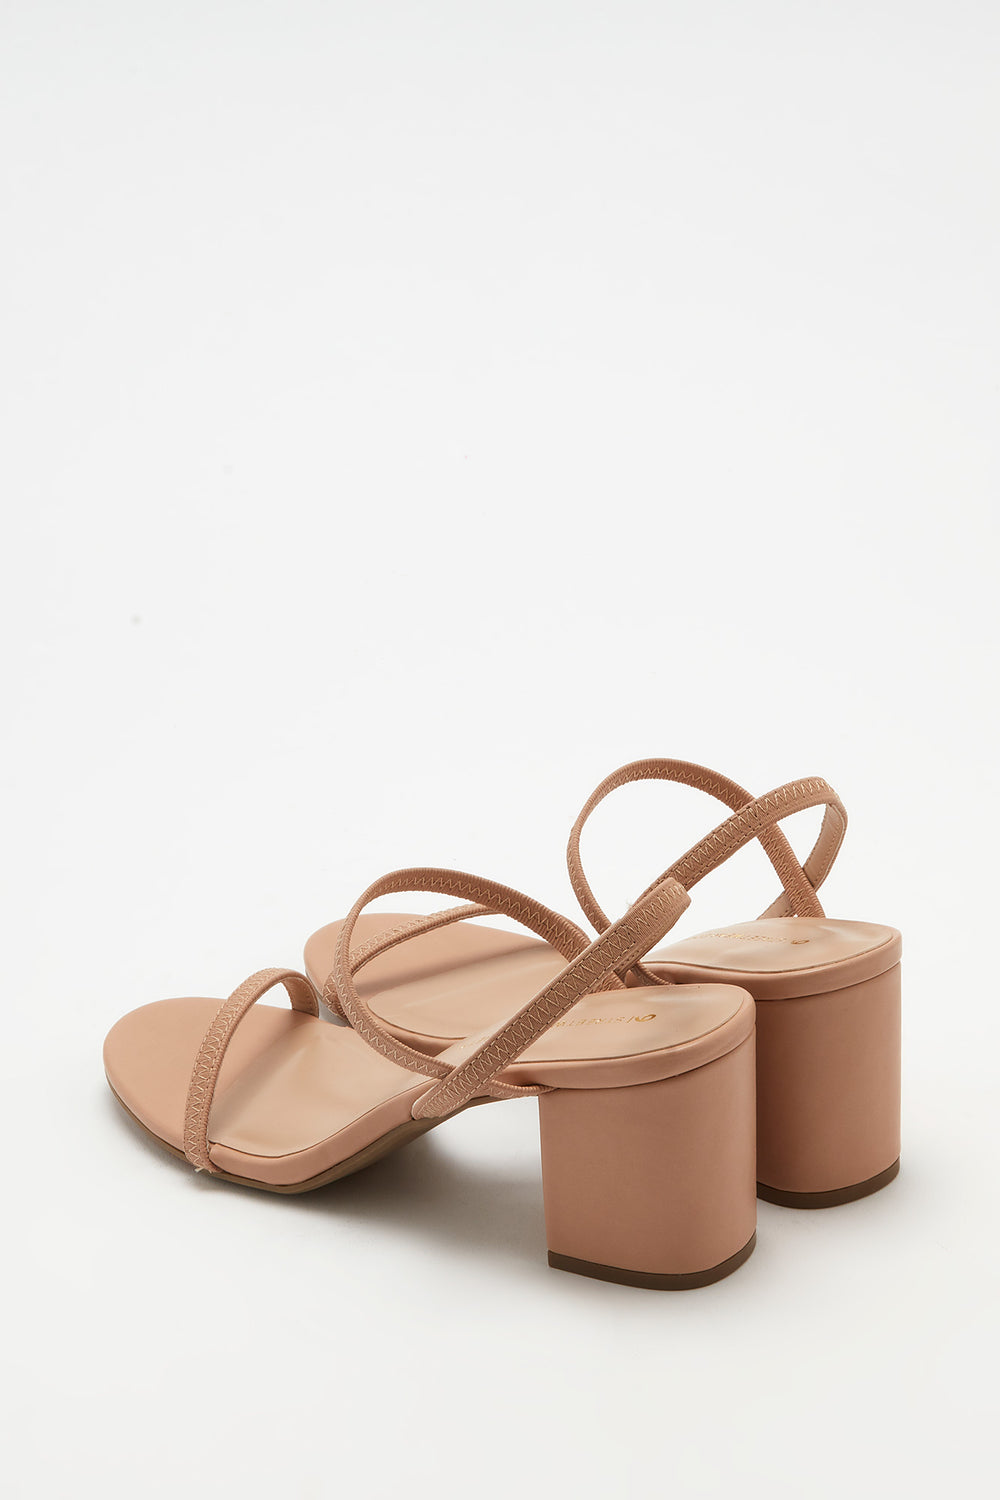 Strappy Mid Block Heel Sandal Natural